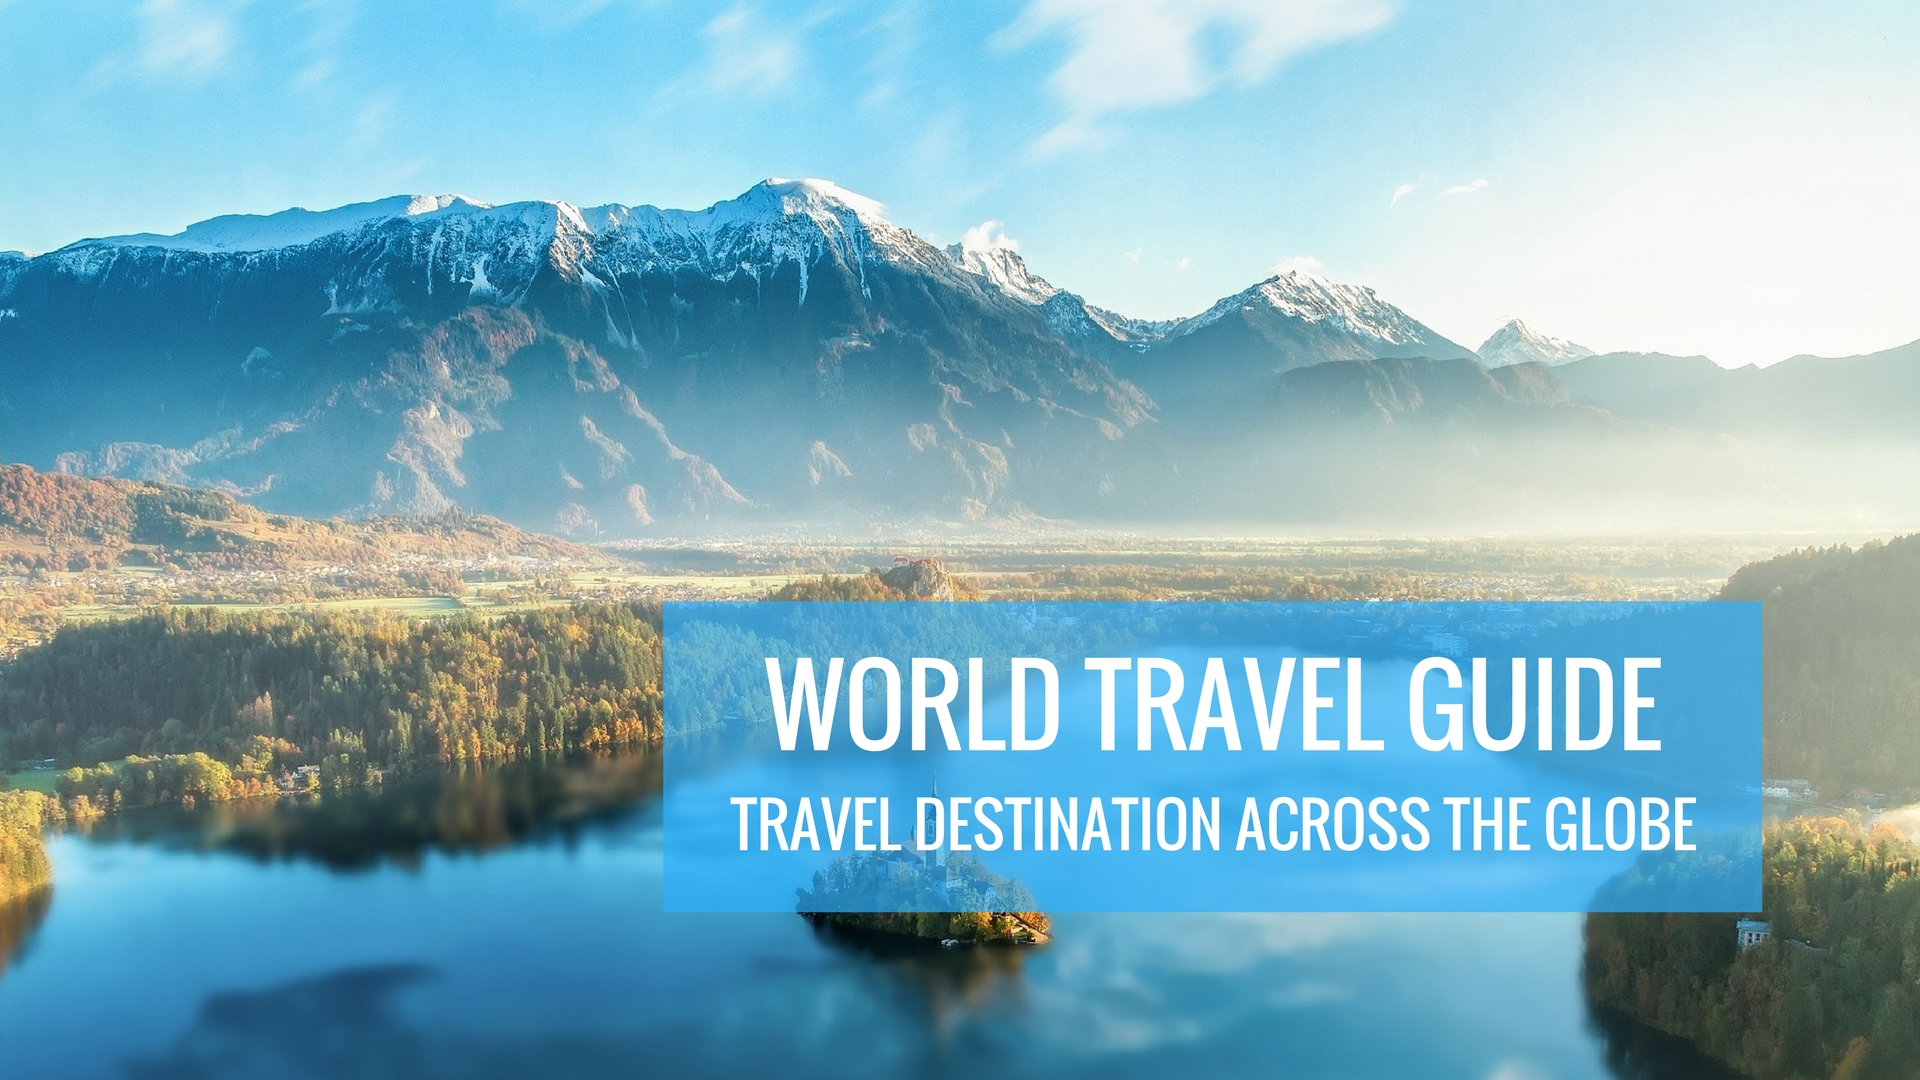 World travel guide - world tour